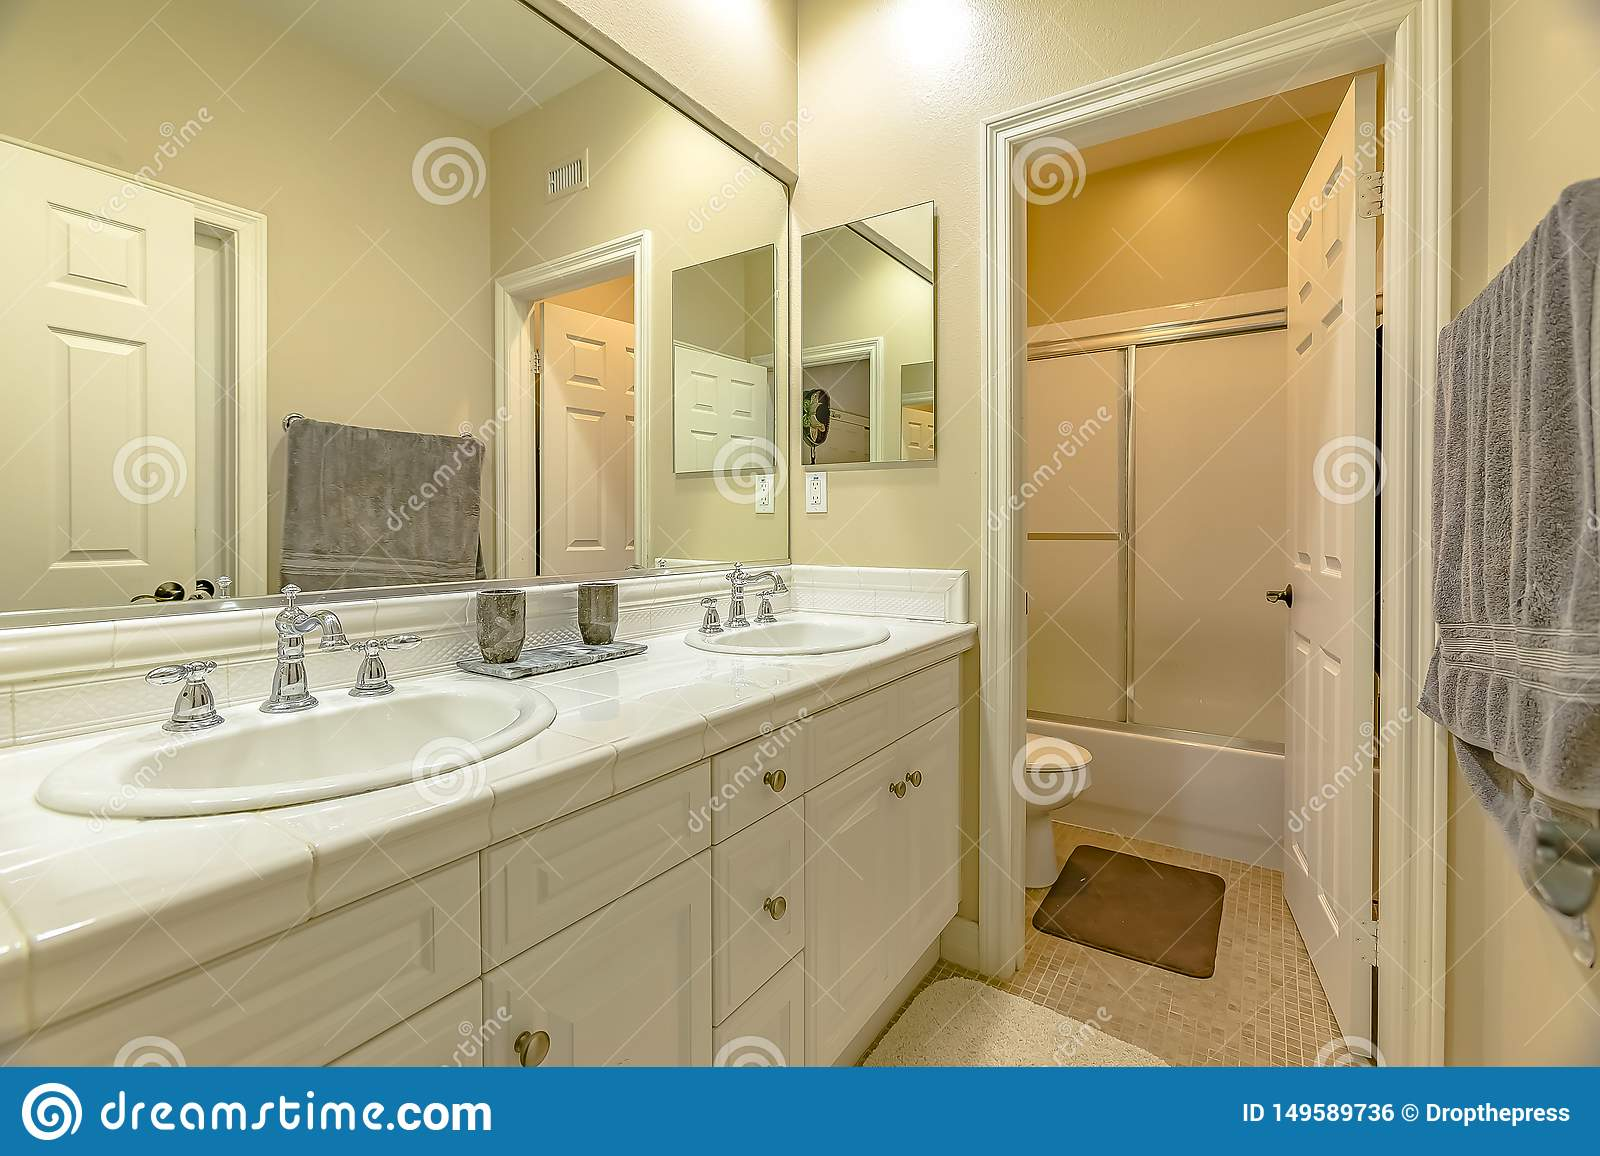 https www dreamstime com interior small bathroom double sink vanity area wood cabinets interior small bathroom double sink image149589736